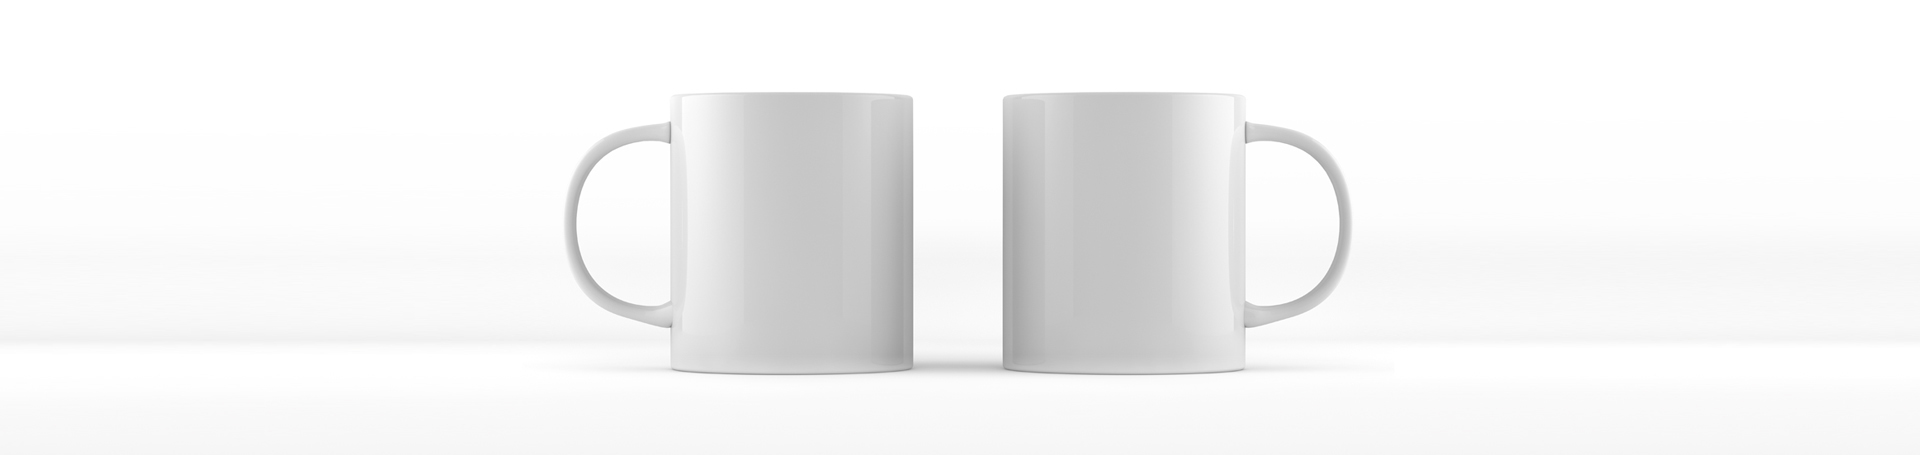 Imagefile Contact Us coffee cups